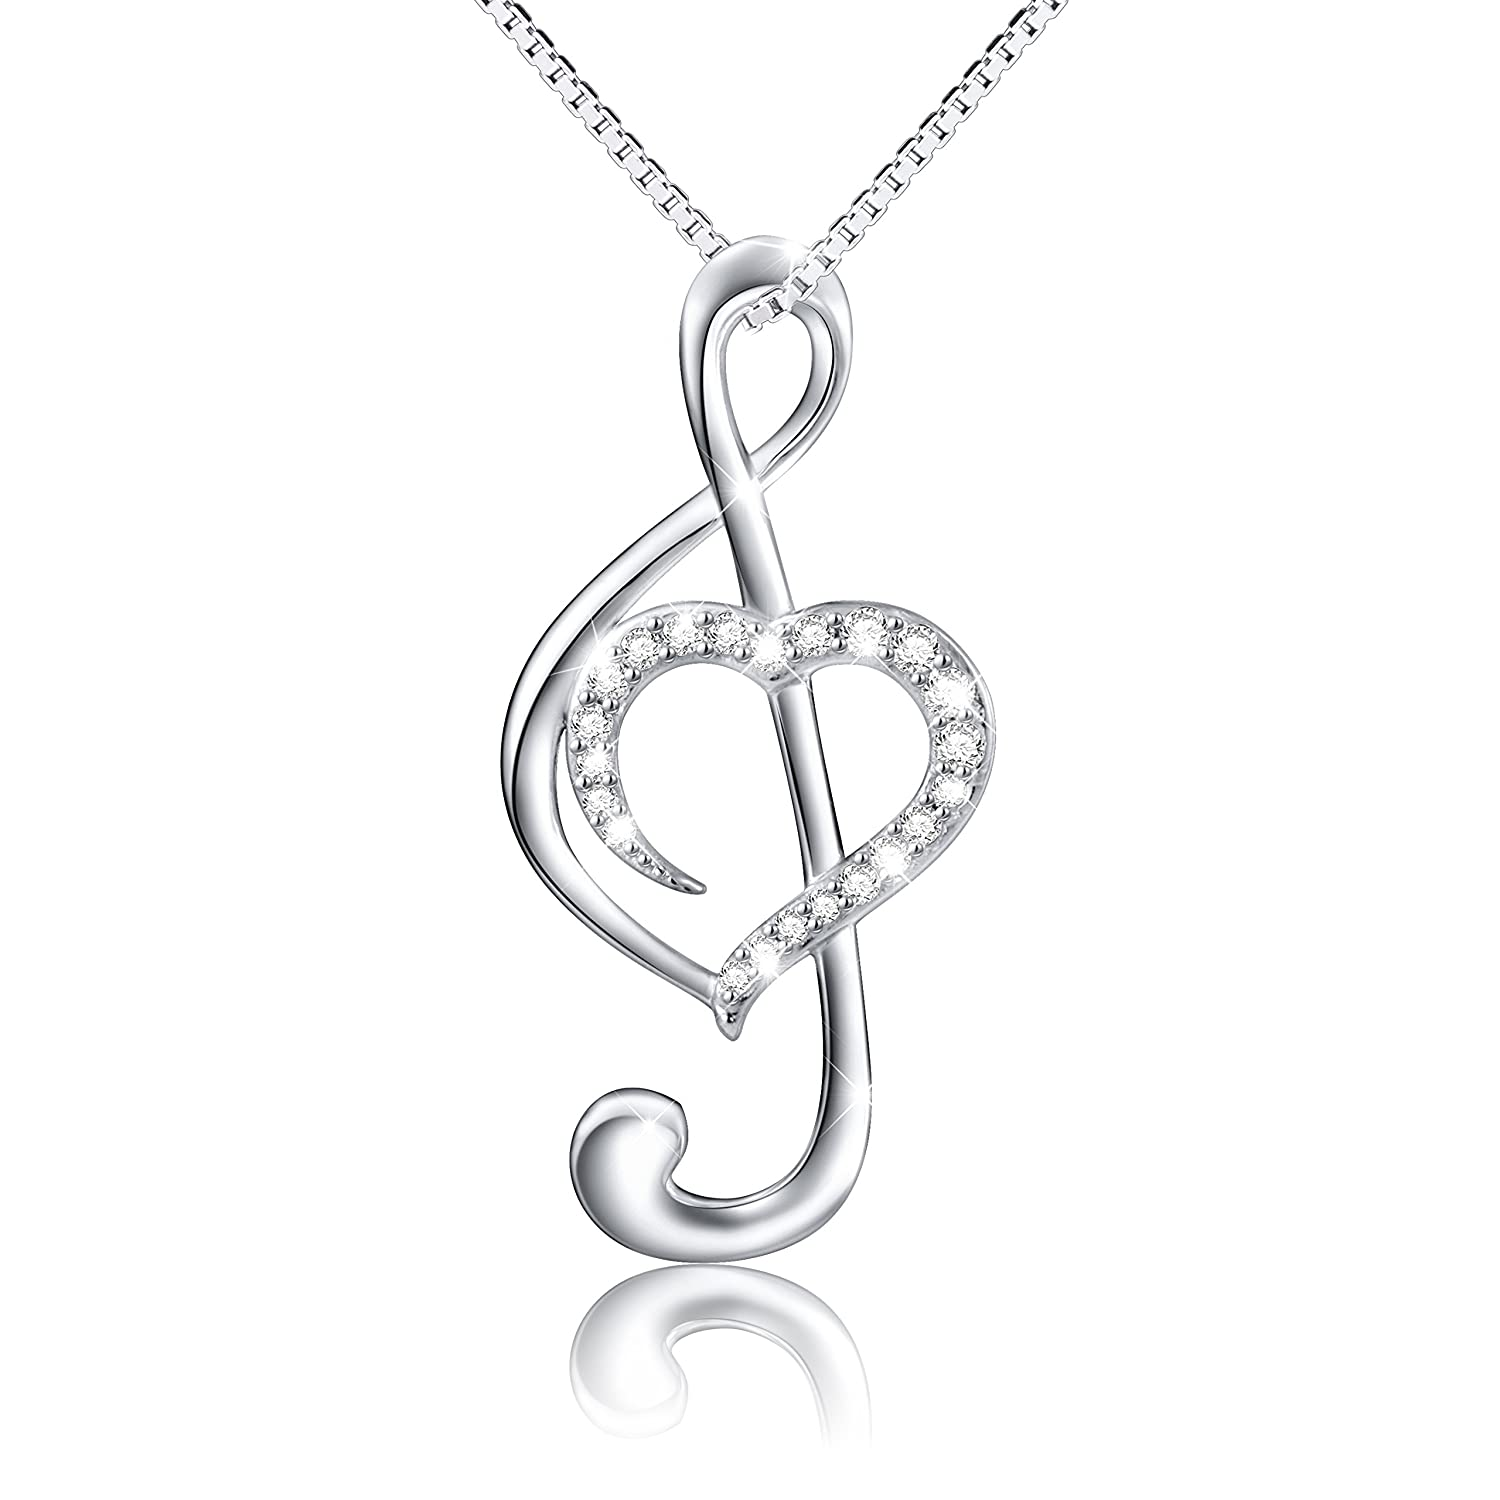 Lily Jewelry Infinity Love 925 Sterling Silver Pendant Necklace 18